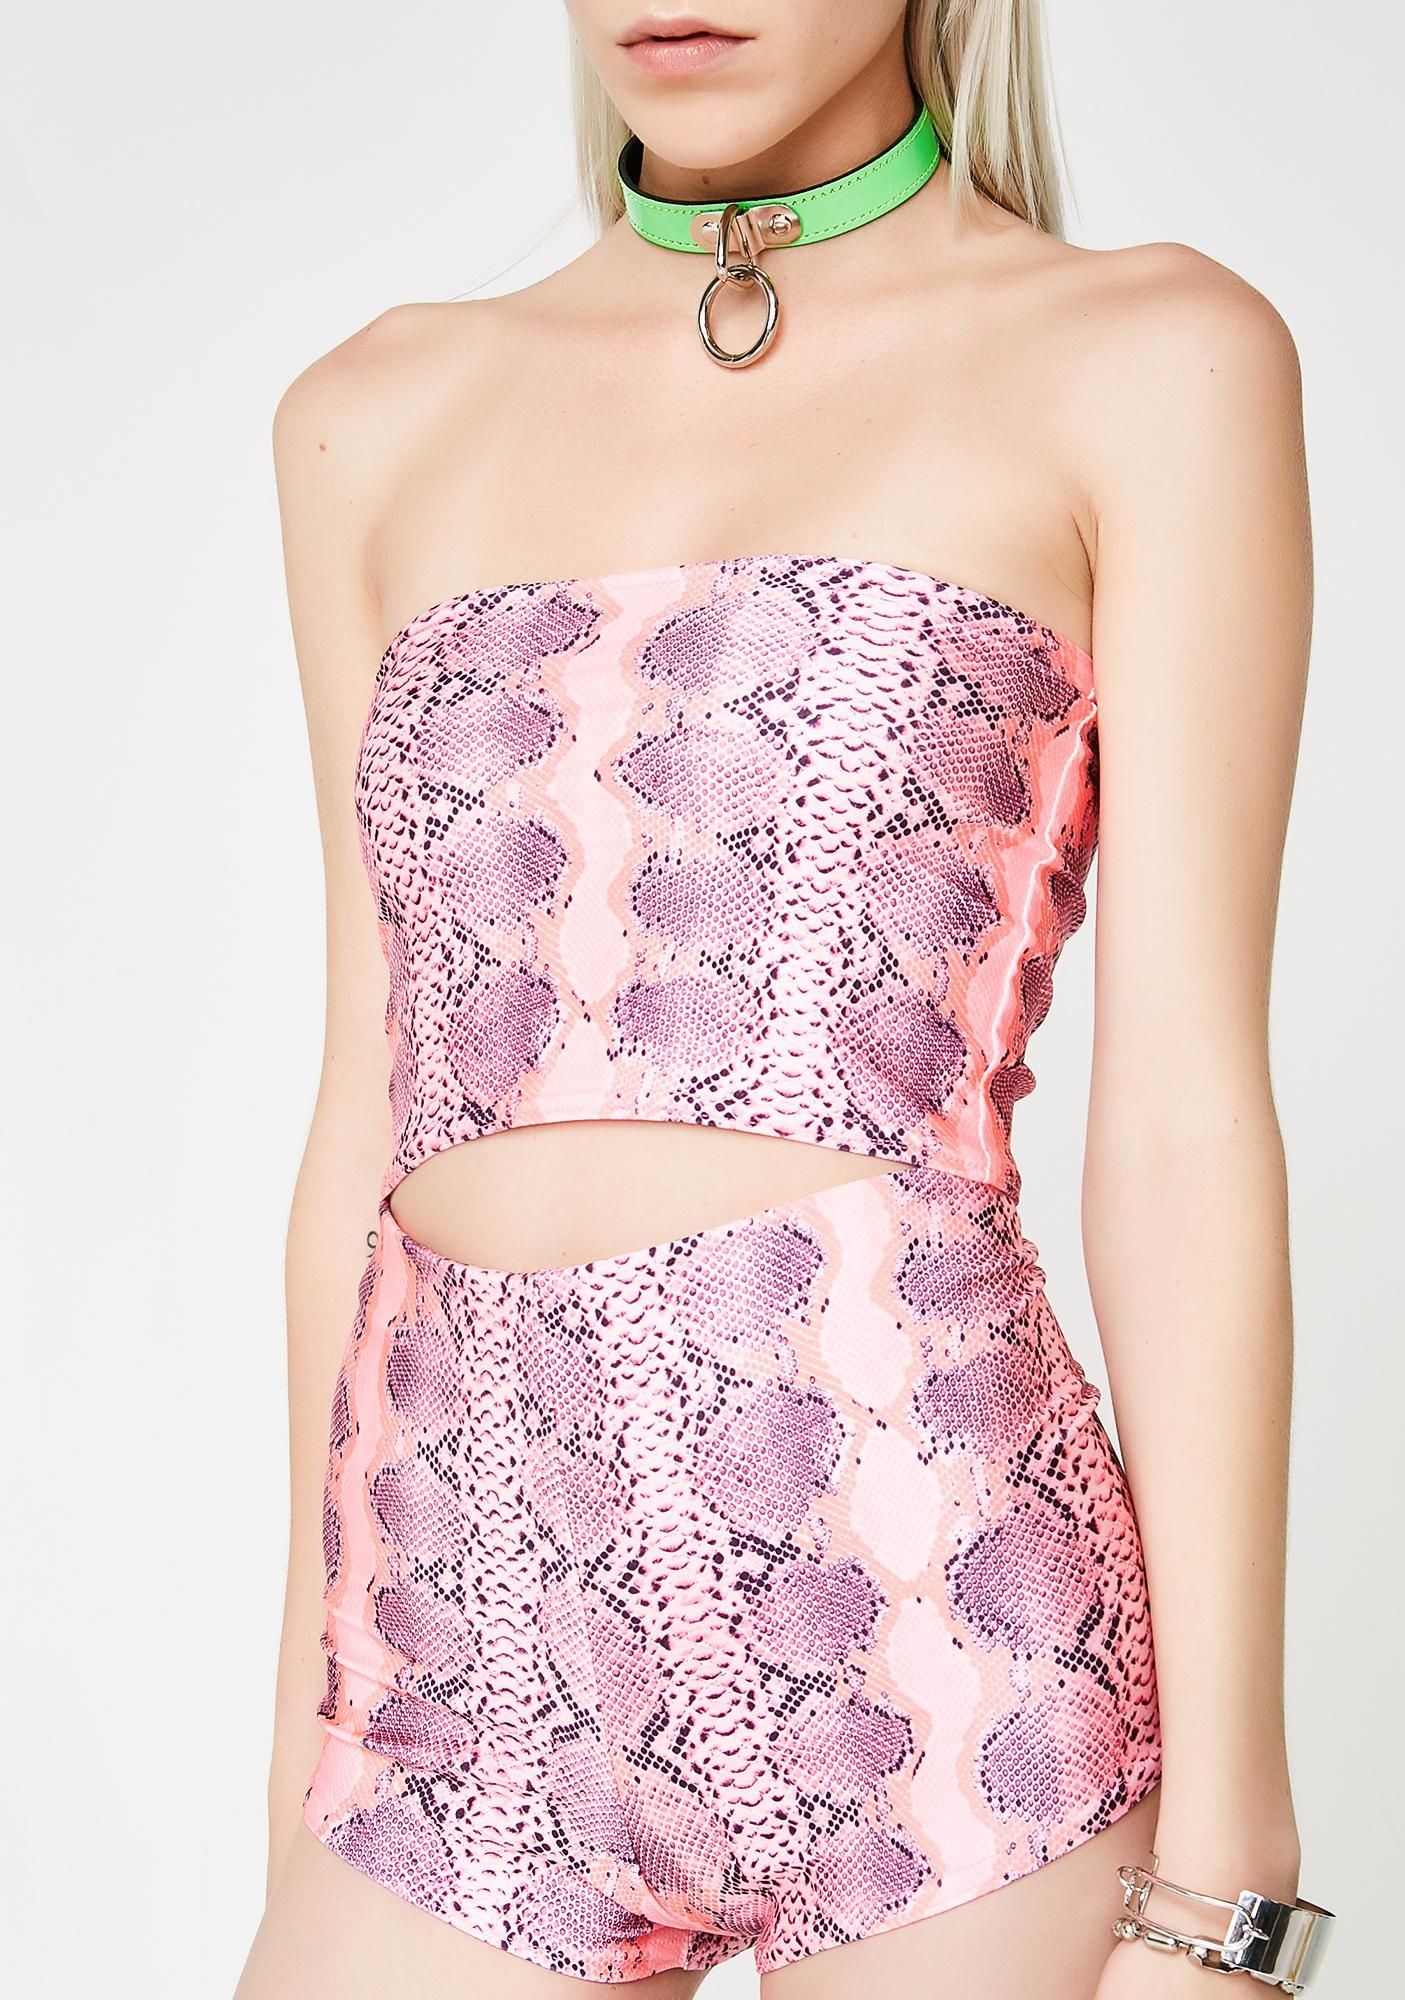 0b65c9d94b53 Slither your way to their hearts with these stretchy shorts that have a  pink snakeskin print all ova.